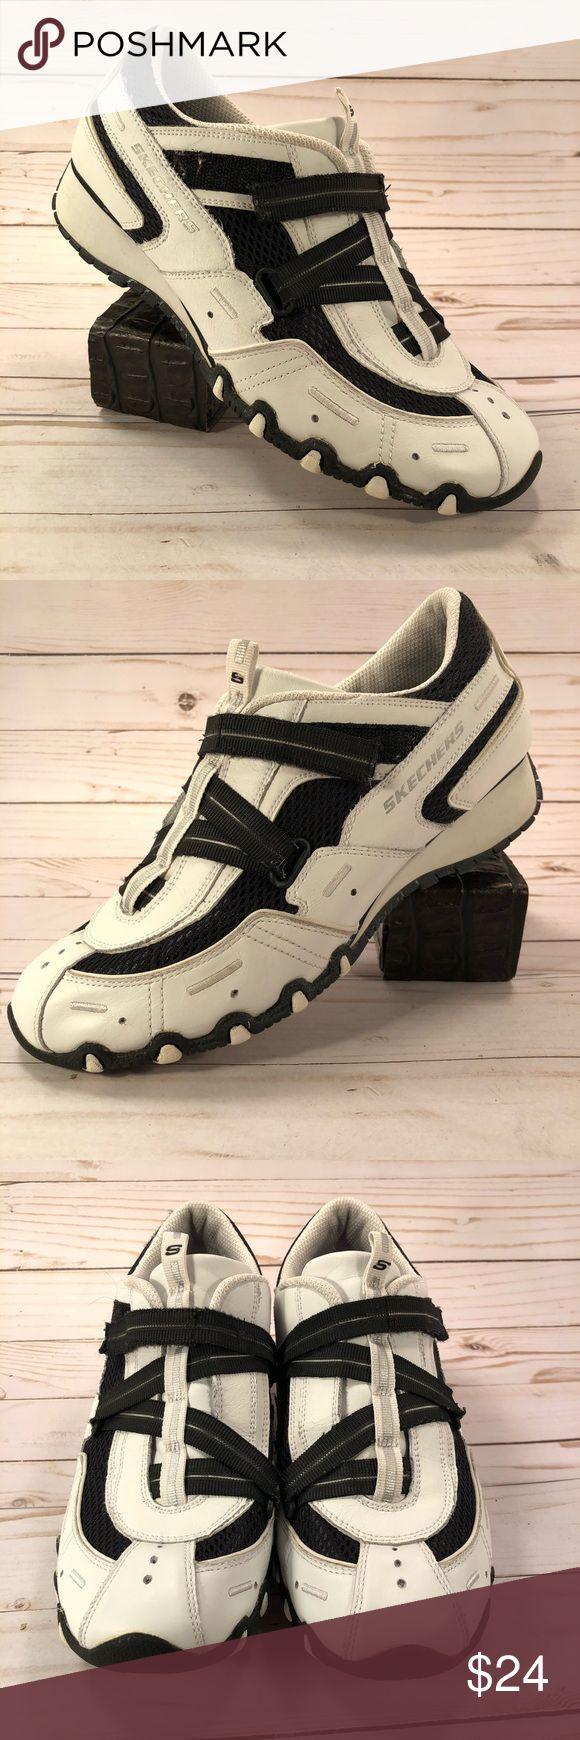 Skechers Bikers Casual Women's Athletic Shoe Size7 Gently Worn! Excellent! Casual Athletic Sneaker Women's 21223 Skechers Shoes Athletic Shoes